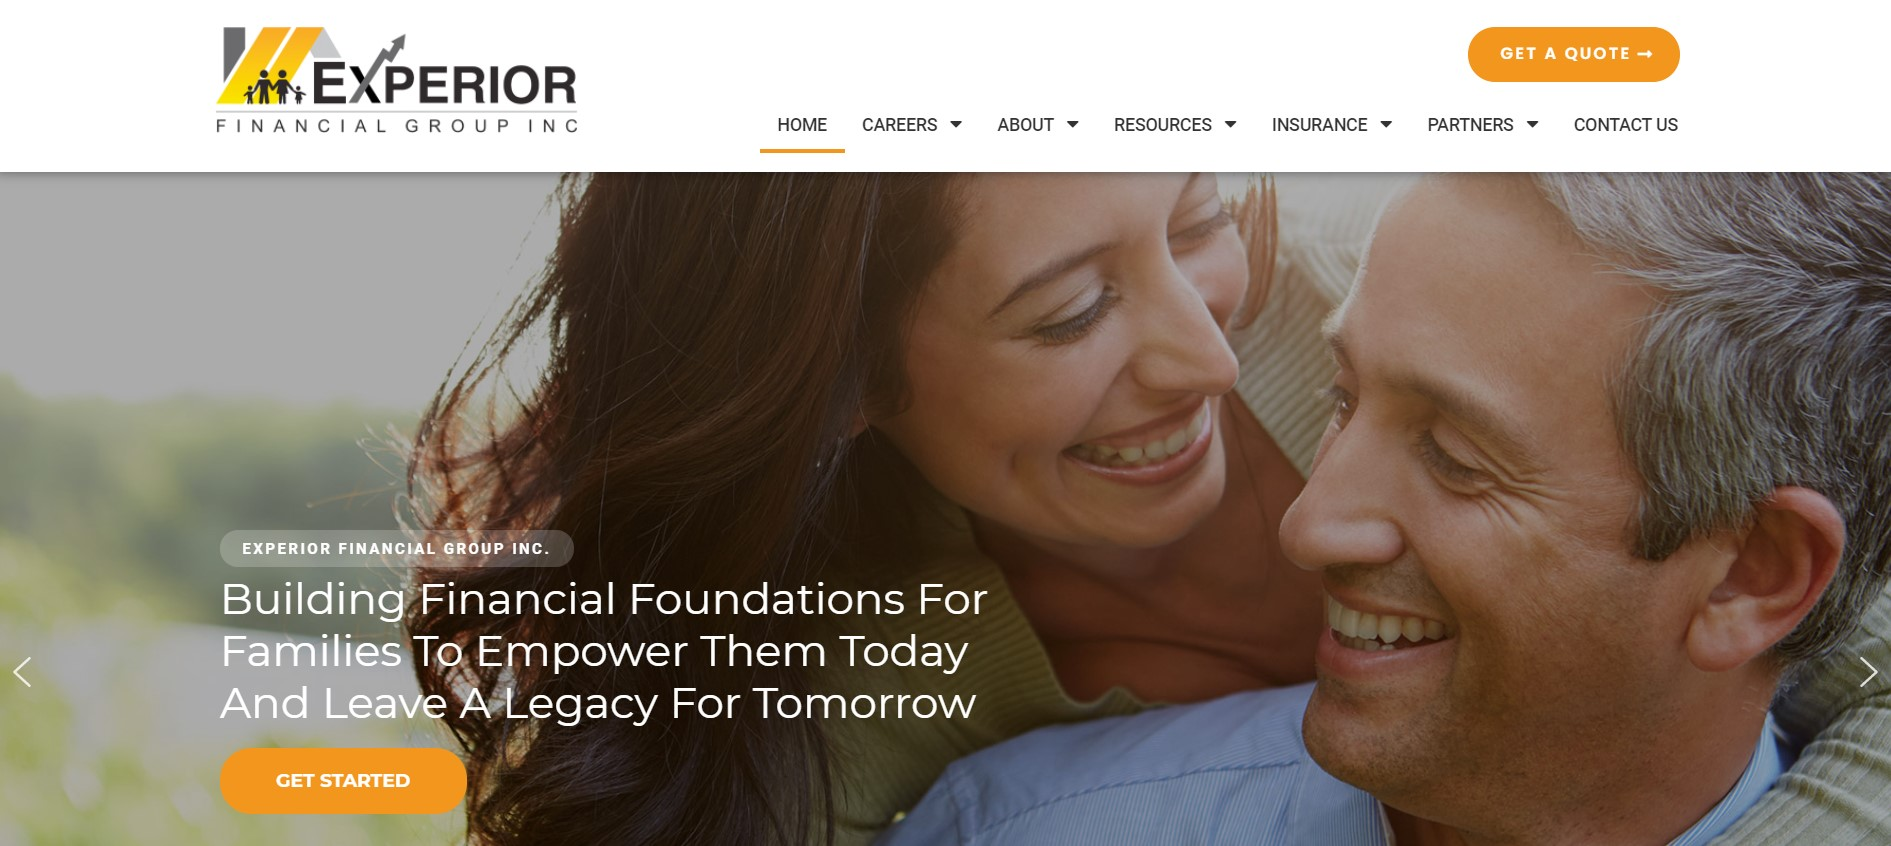 experior financial service in calgary